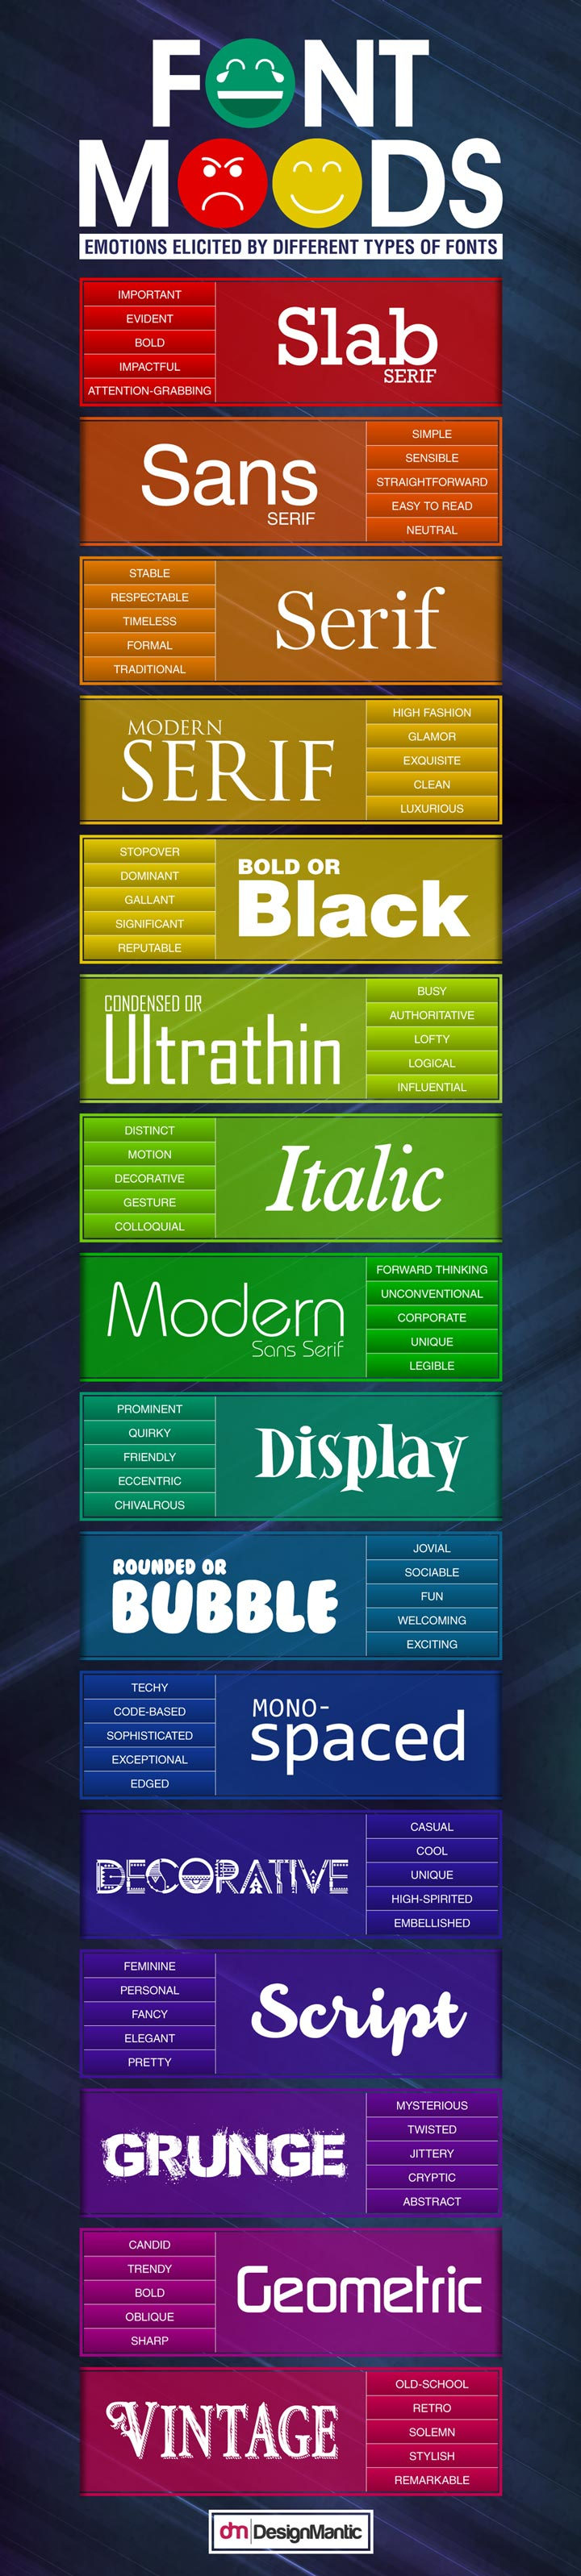 Font Moods Infographic